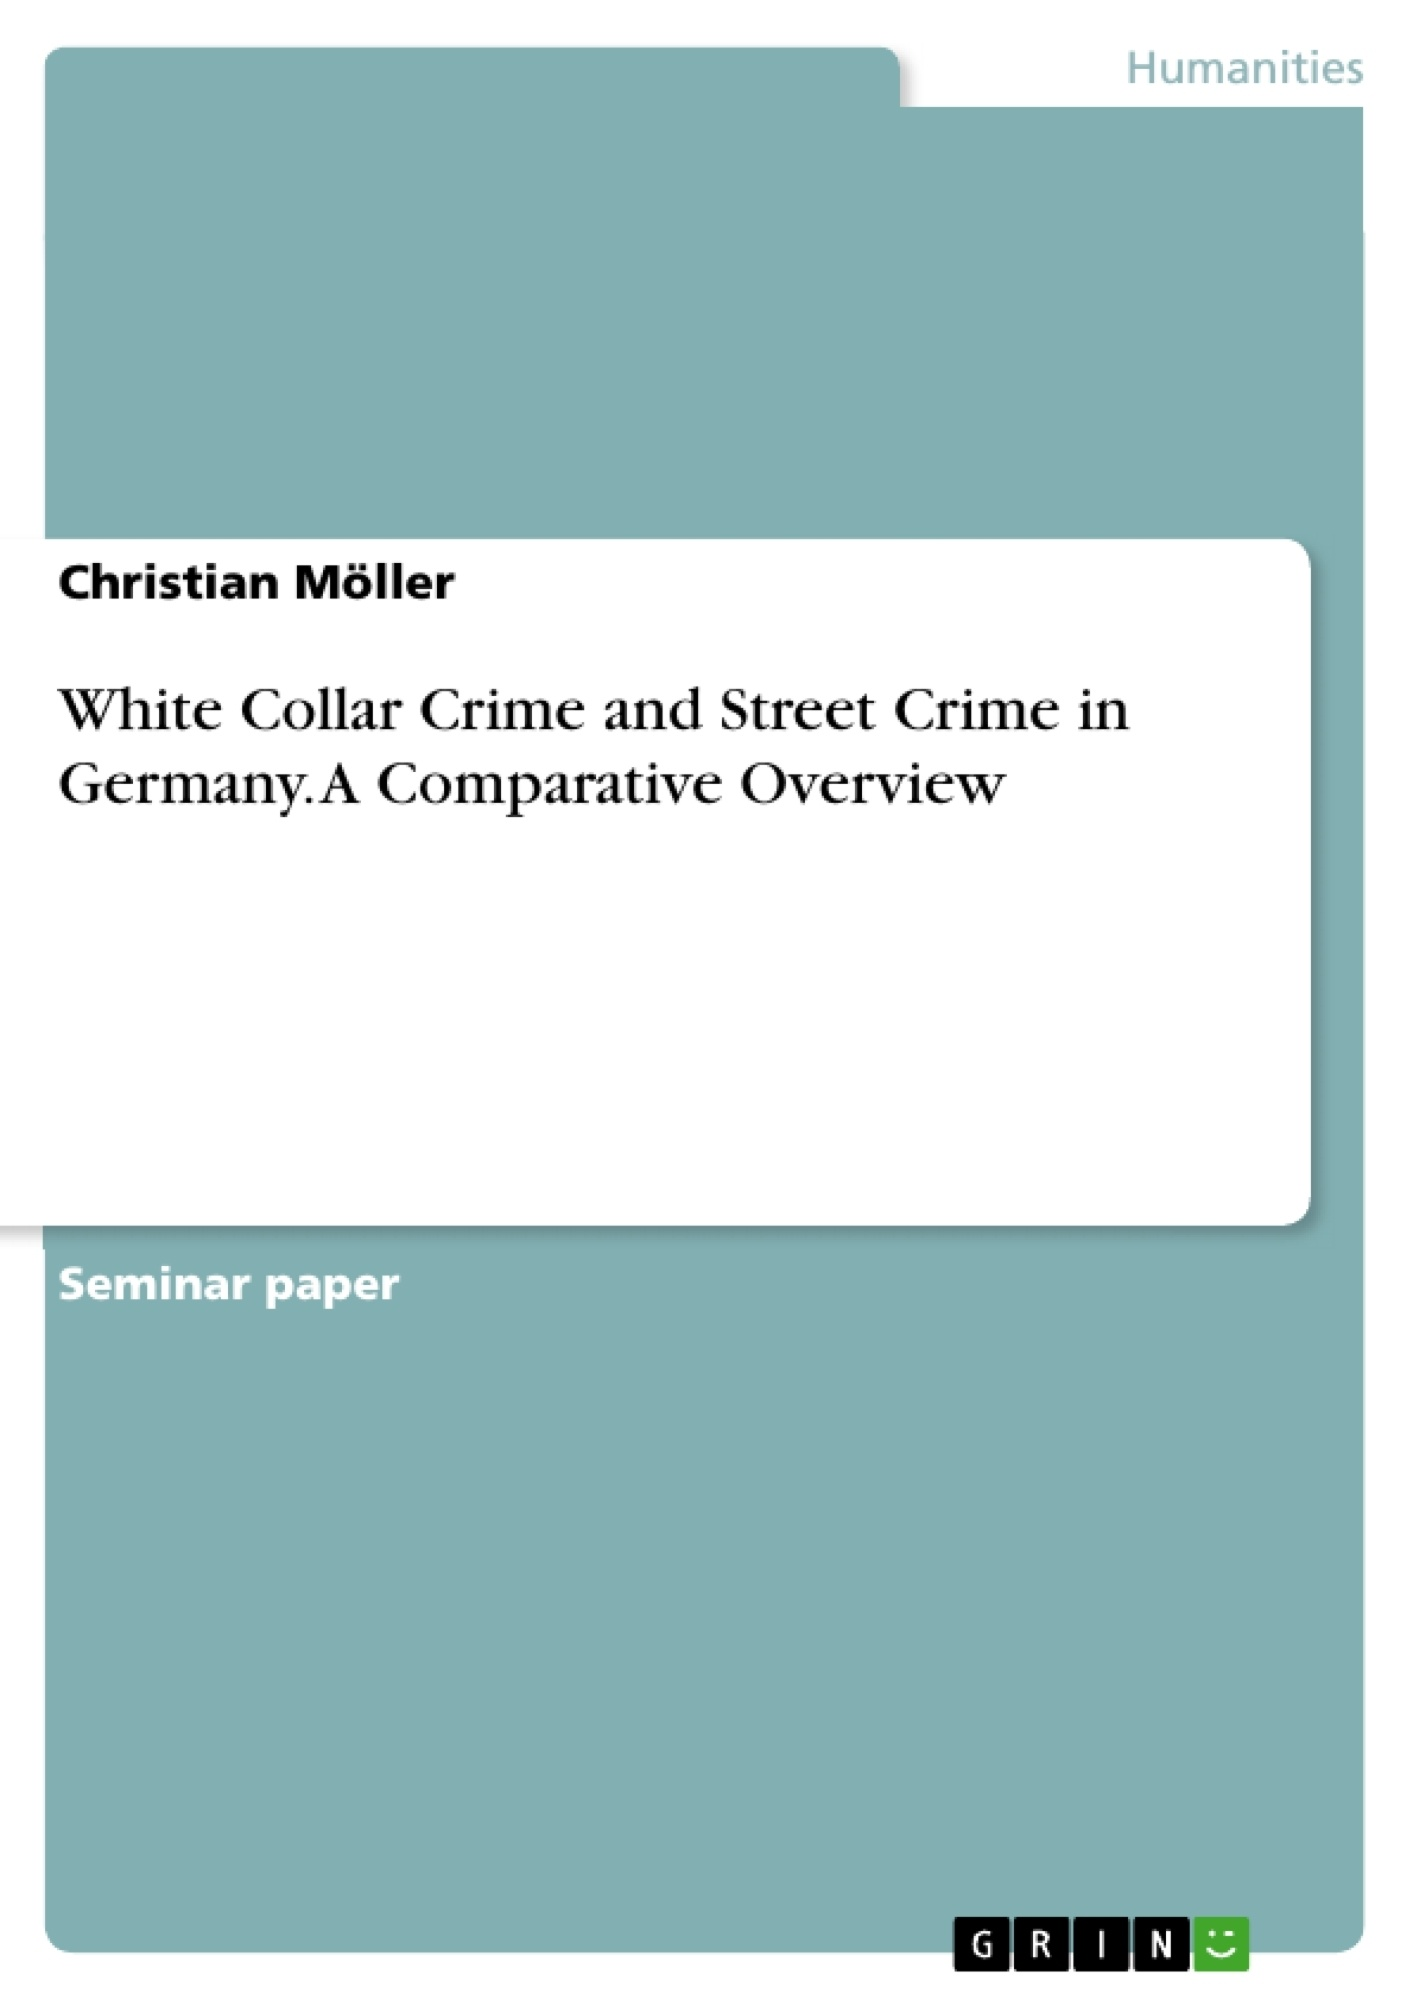 Title: White Collar Crime and Street Crime in Germany. A Comparative Overview